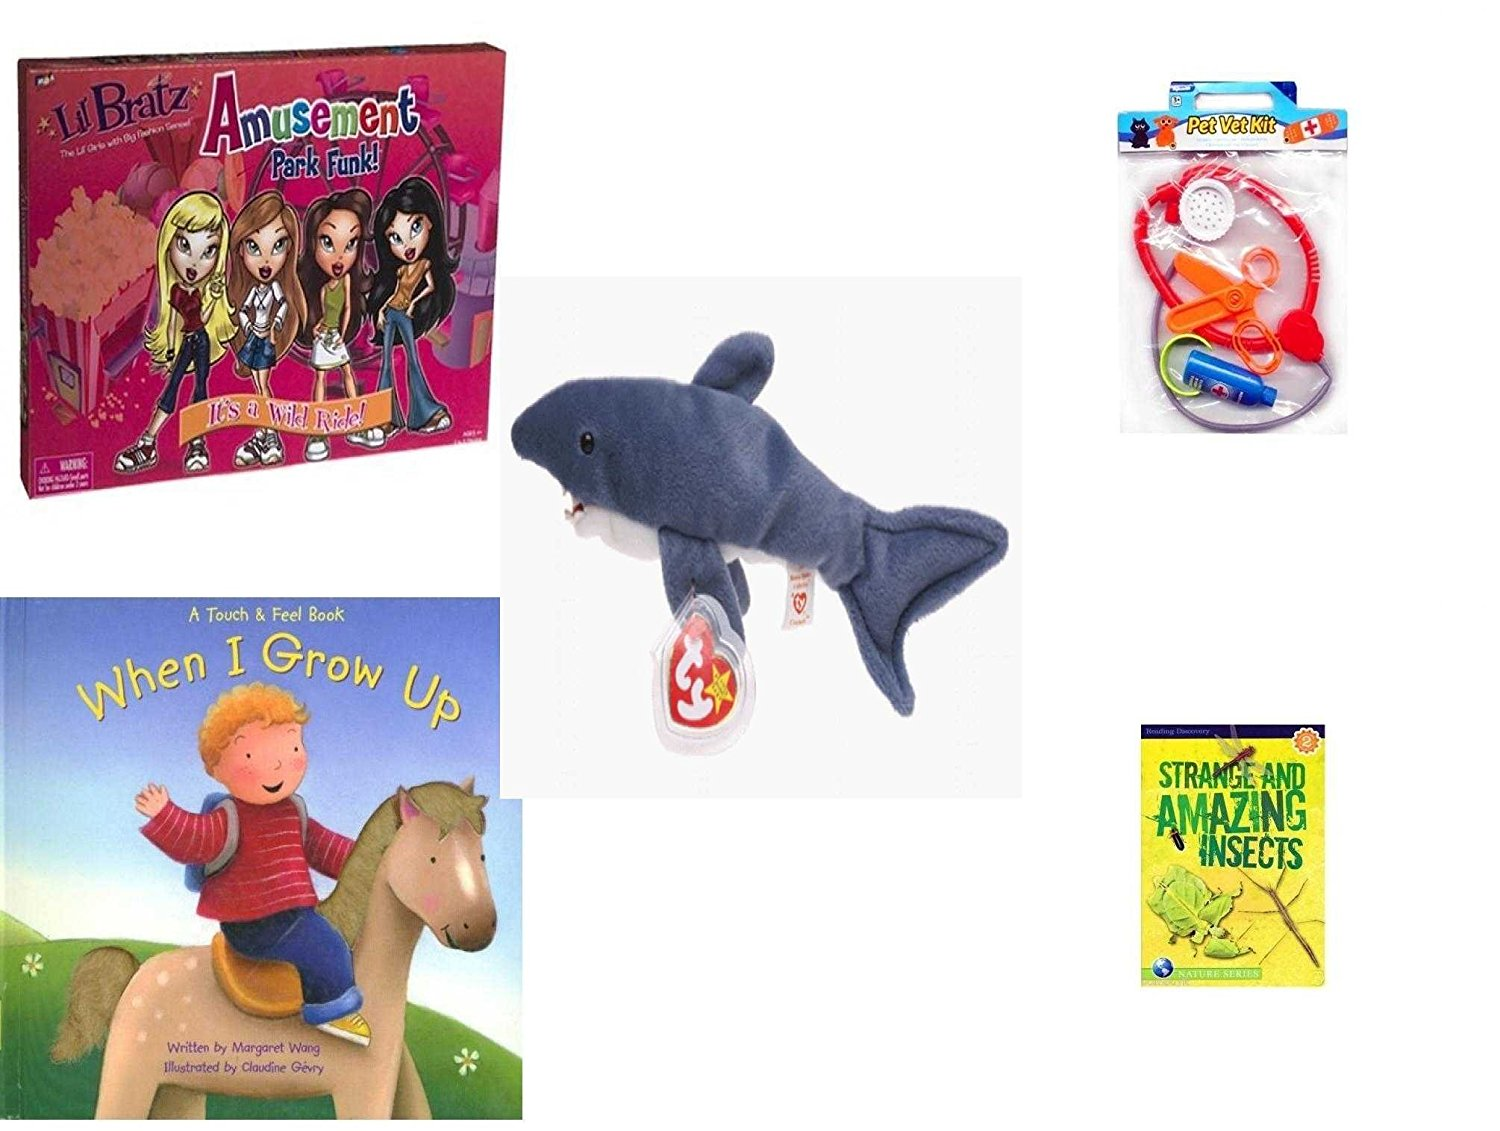 Children's Gift Bundle - Ages 3-5 [5 Piece] - Lil Bratz Game Amusement Park Funk. - Pet Vet Kit Veterinarian 4pc Set Toy - Ty Beanie Baby - Crunch the Shark - When I Grow Up Hardcover Book - Strang